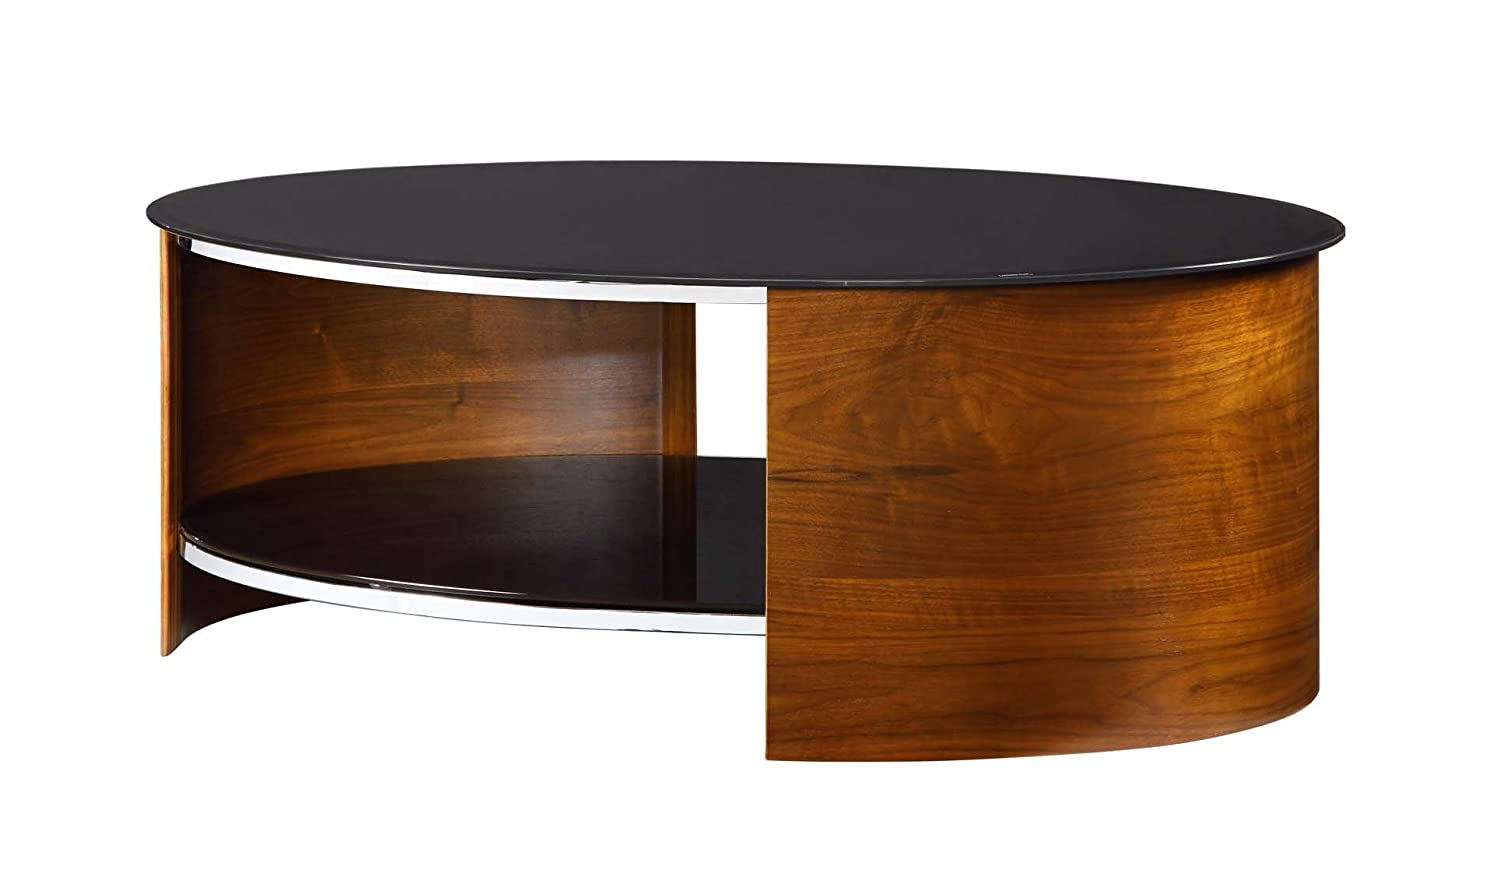 Jual curve jf301 oval coffee table amazon kitchen home geotapseo Choice Image